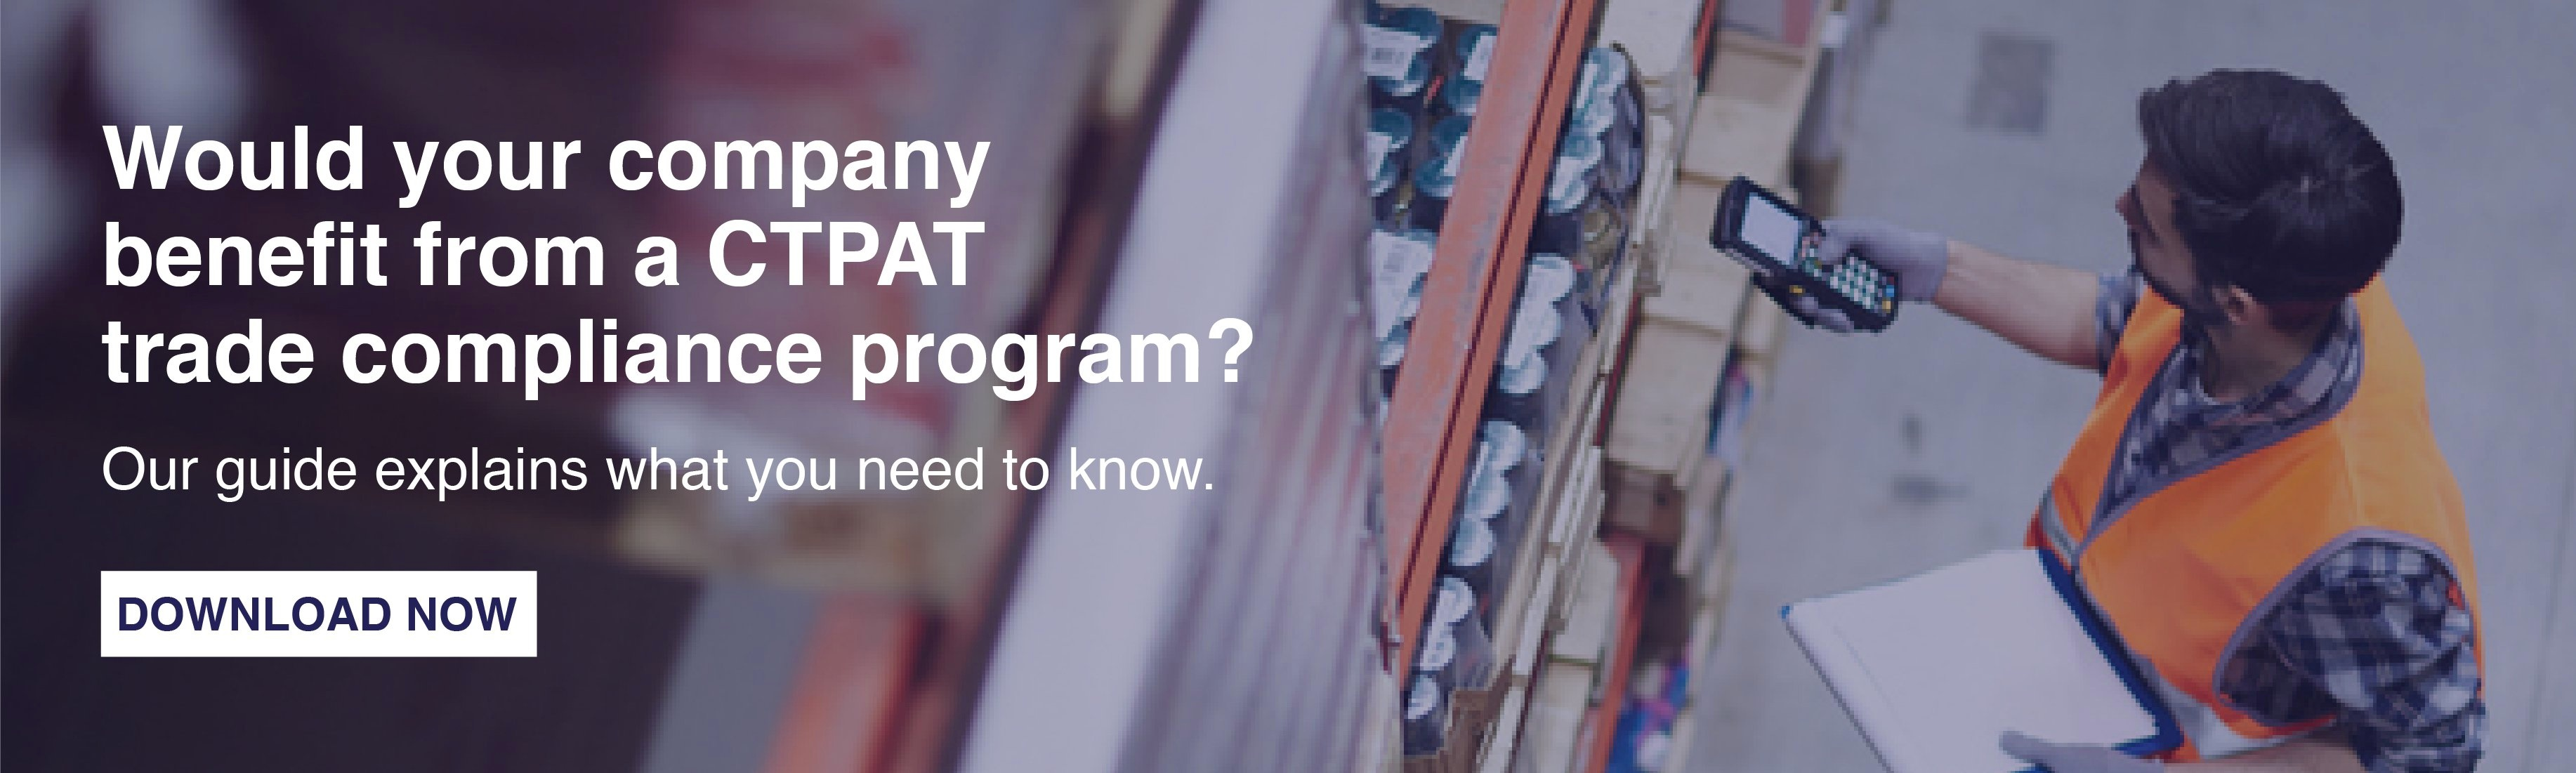 CTPAT Trade Compliance Program Guide